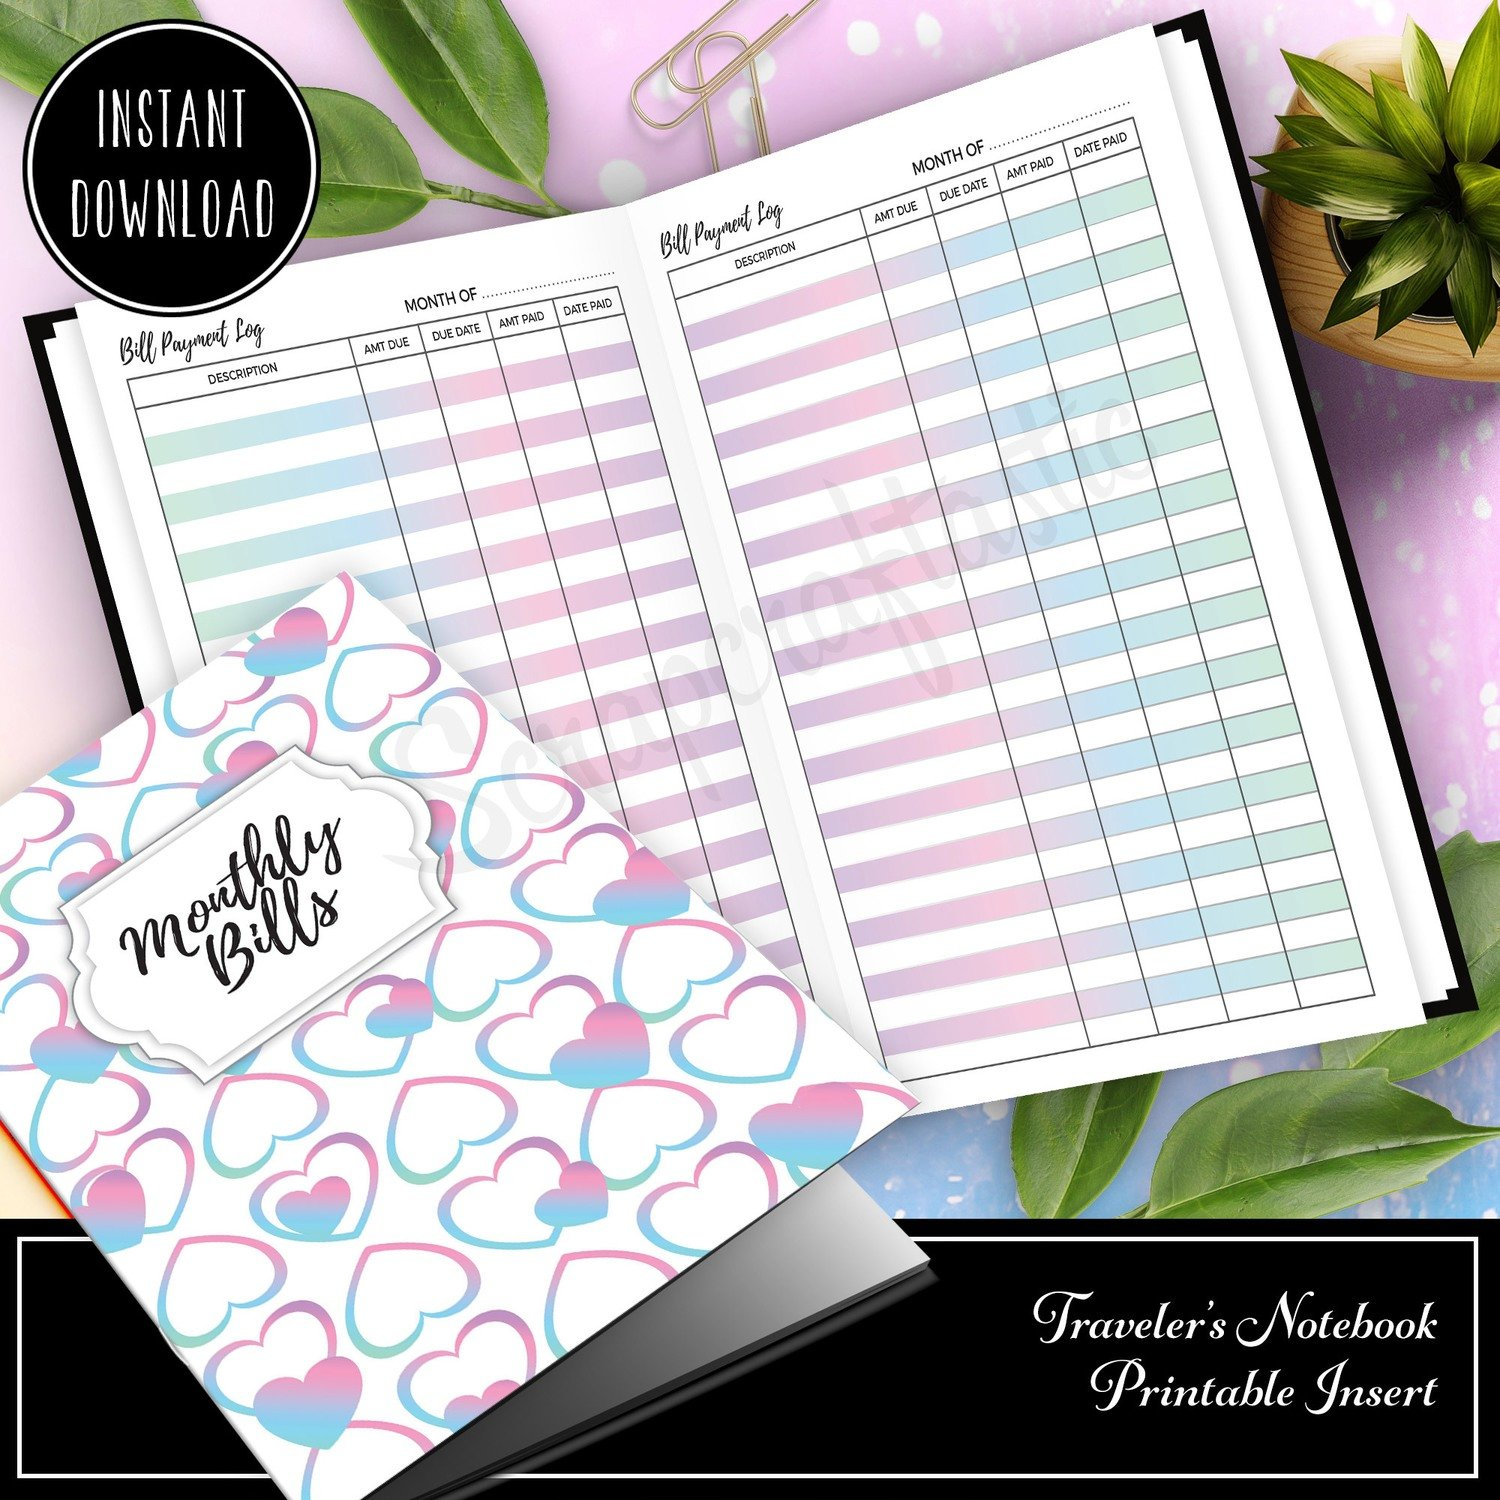 A6 TN - Unicorn Magic Monthly Bill Payment Log Traveler's Notebook Printable Insert